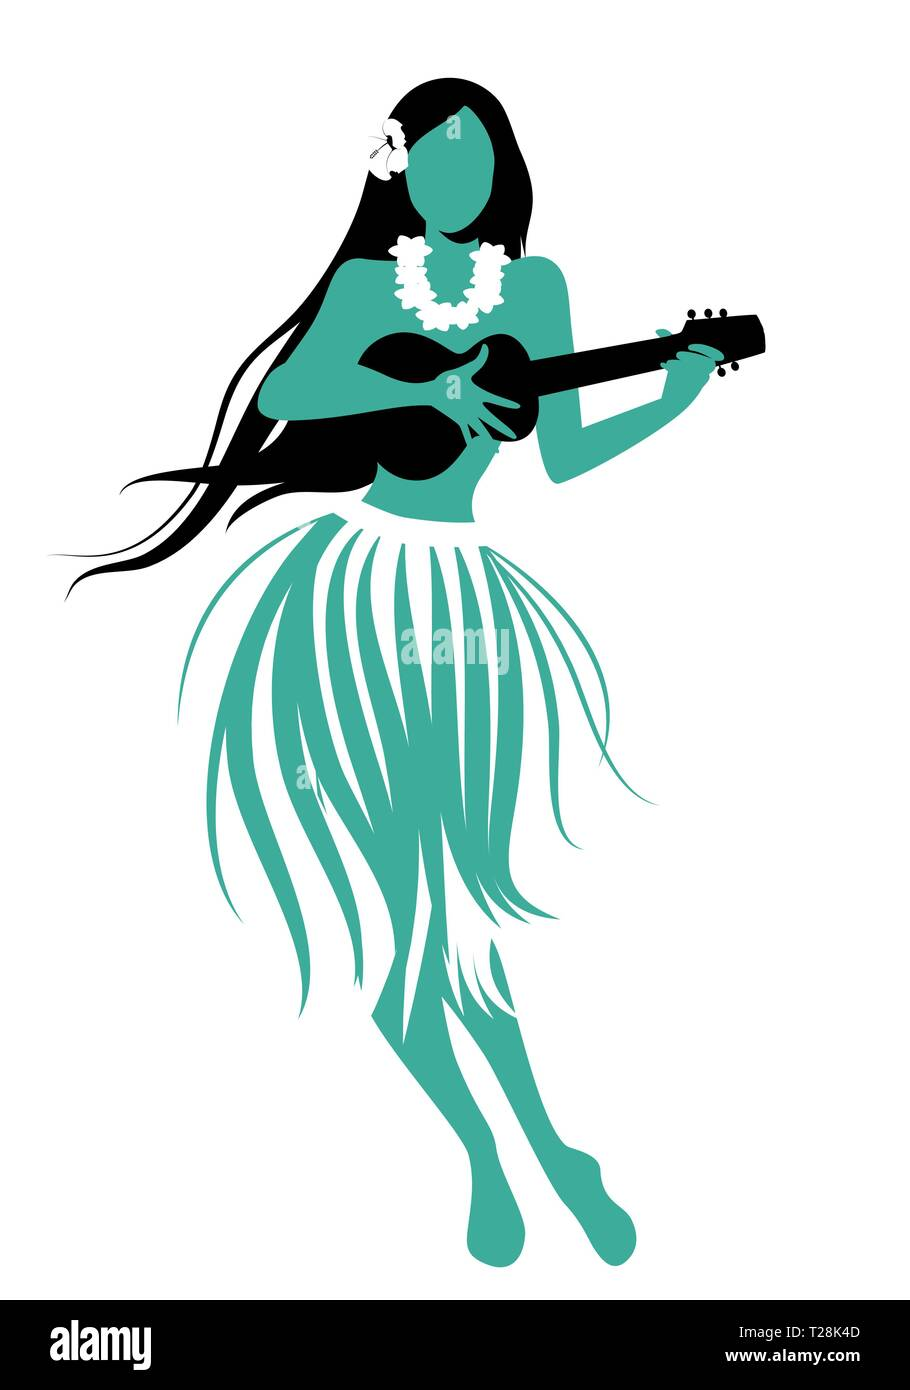 Silhouette of Hawaiian girl wearing skirt of leaves playing ukulele isolated on white background. - Stock Vector